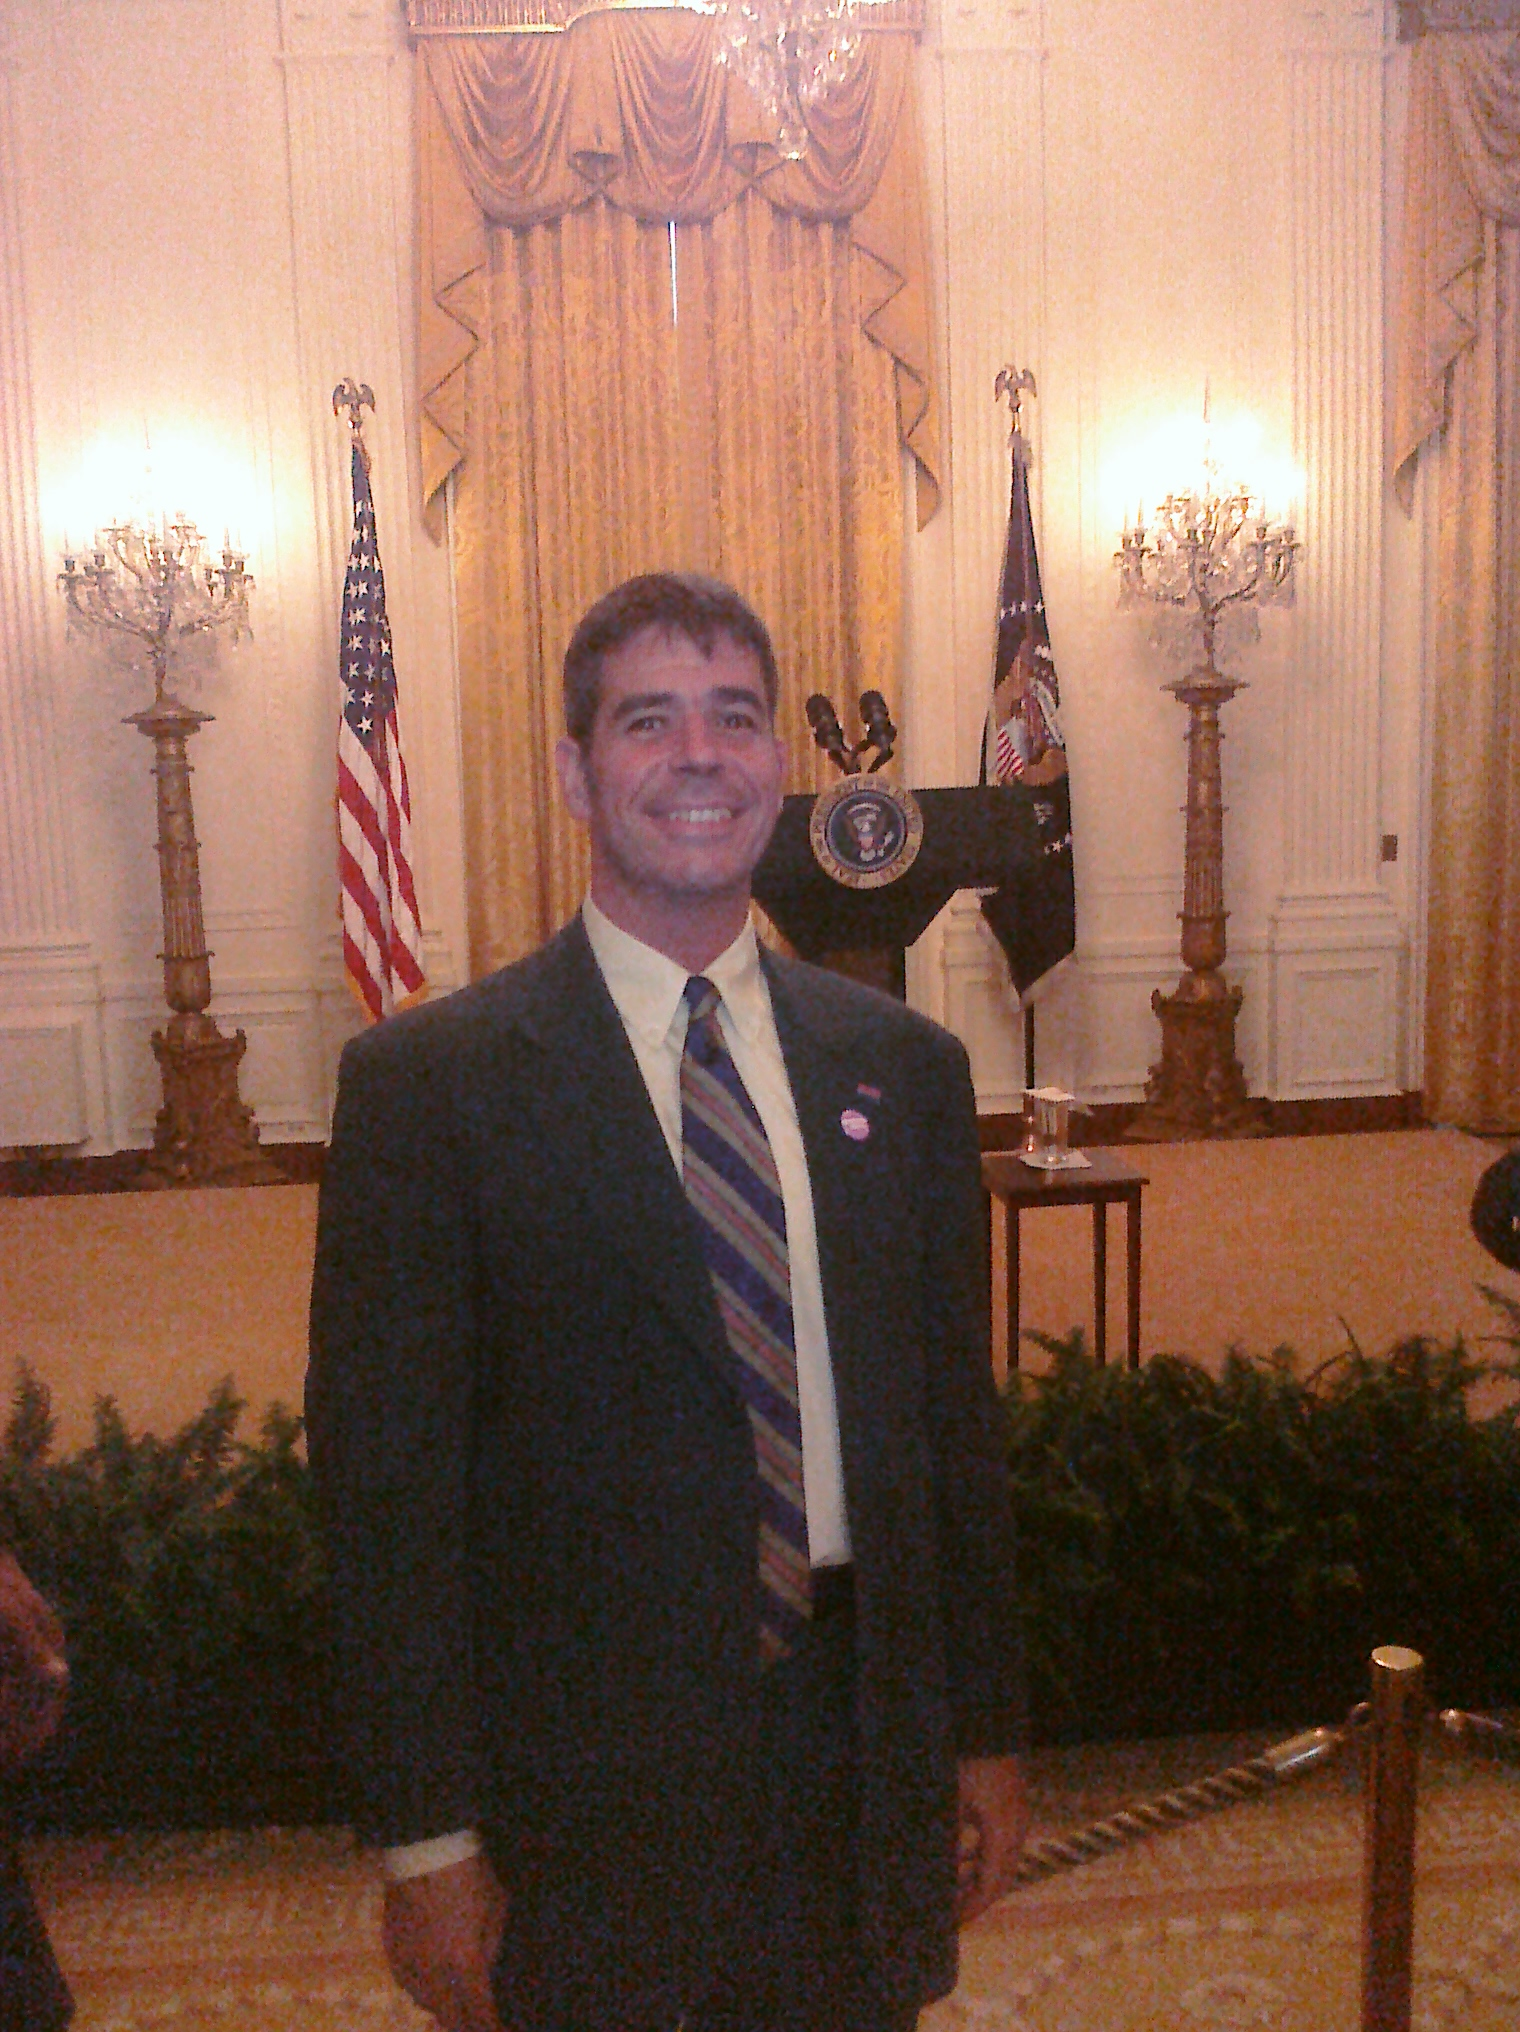 Bisexual-identified LGBTQ Activist Paul Nocera of NYC's ViRequest at the White House LGBT Pride Month Reception June 29 2011